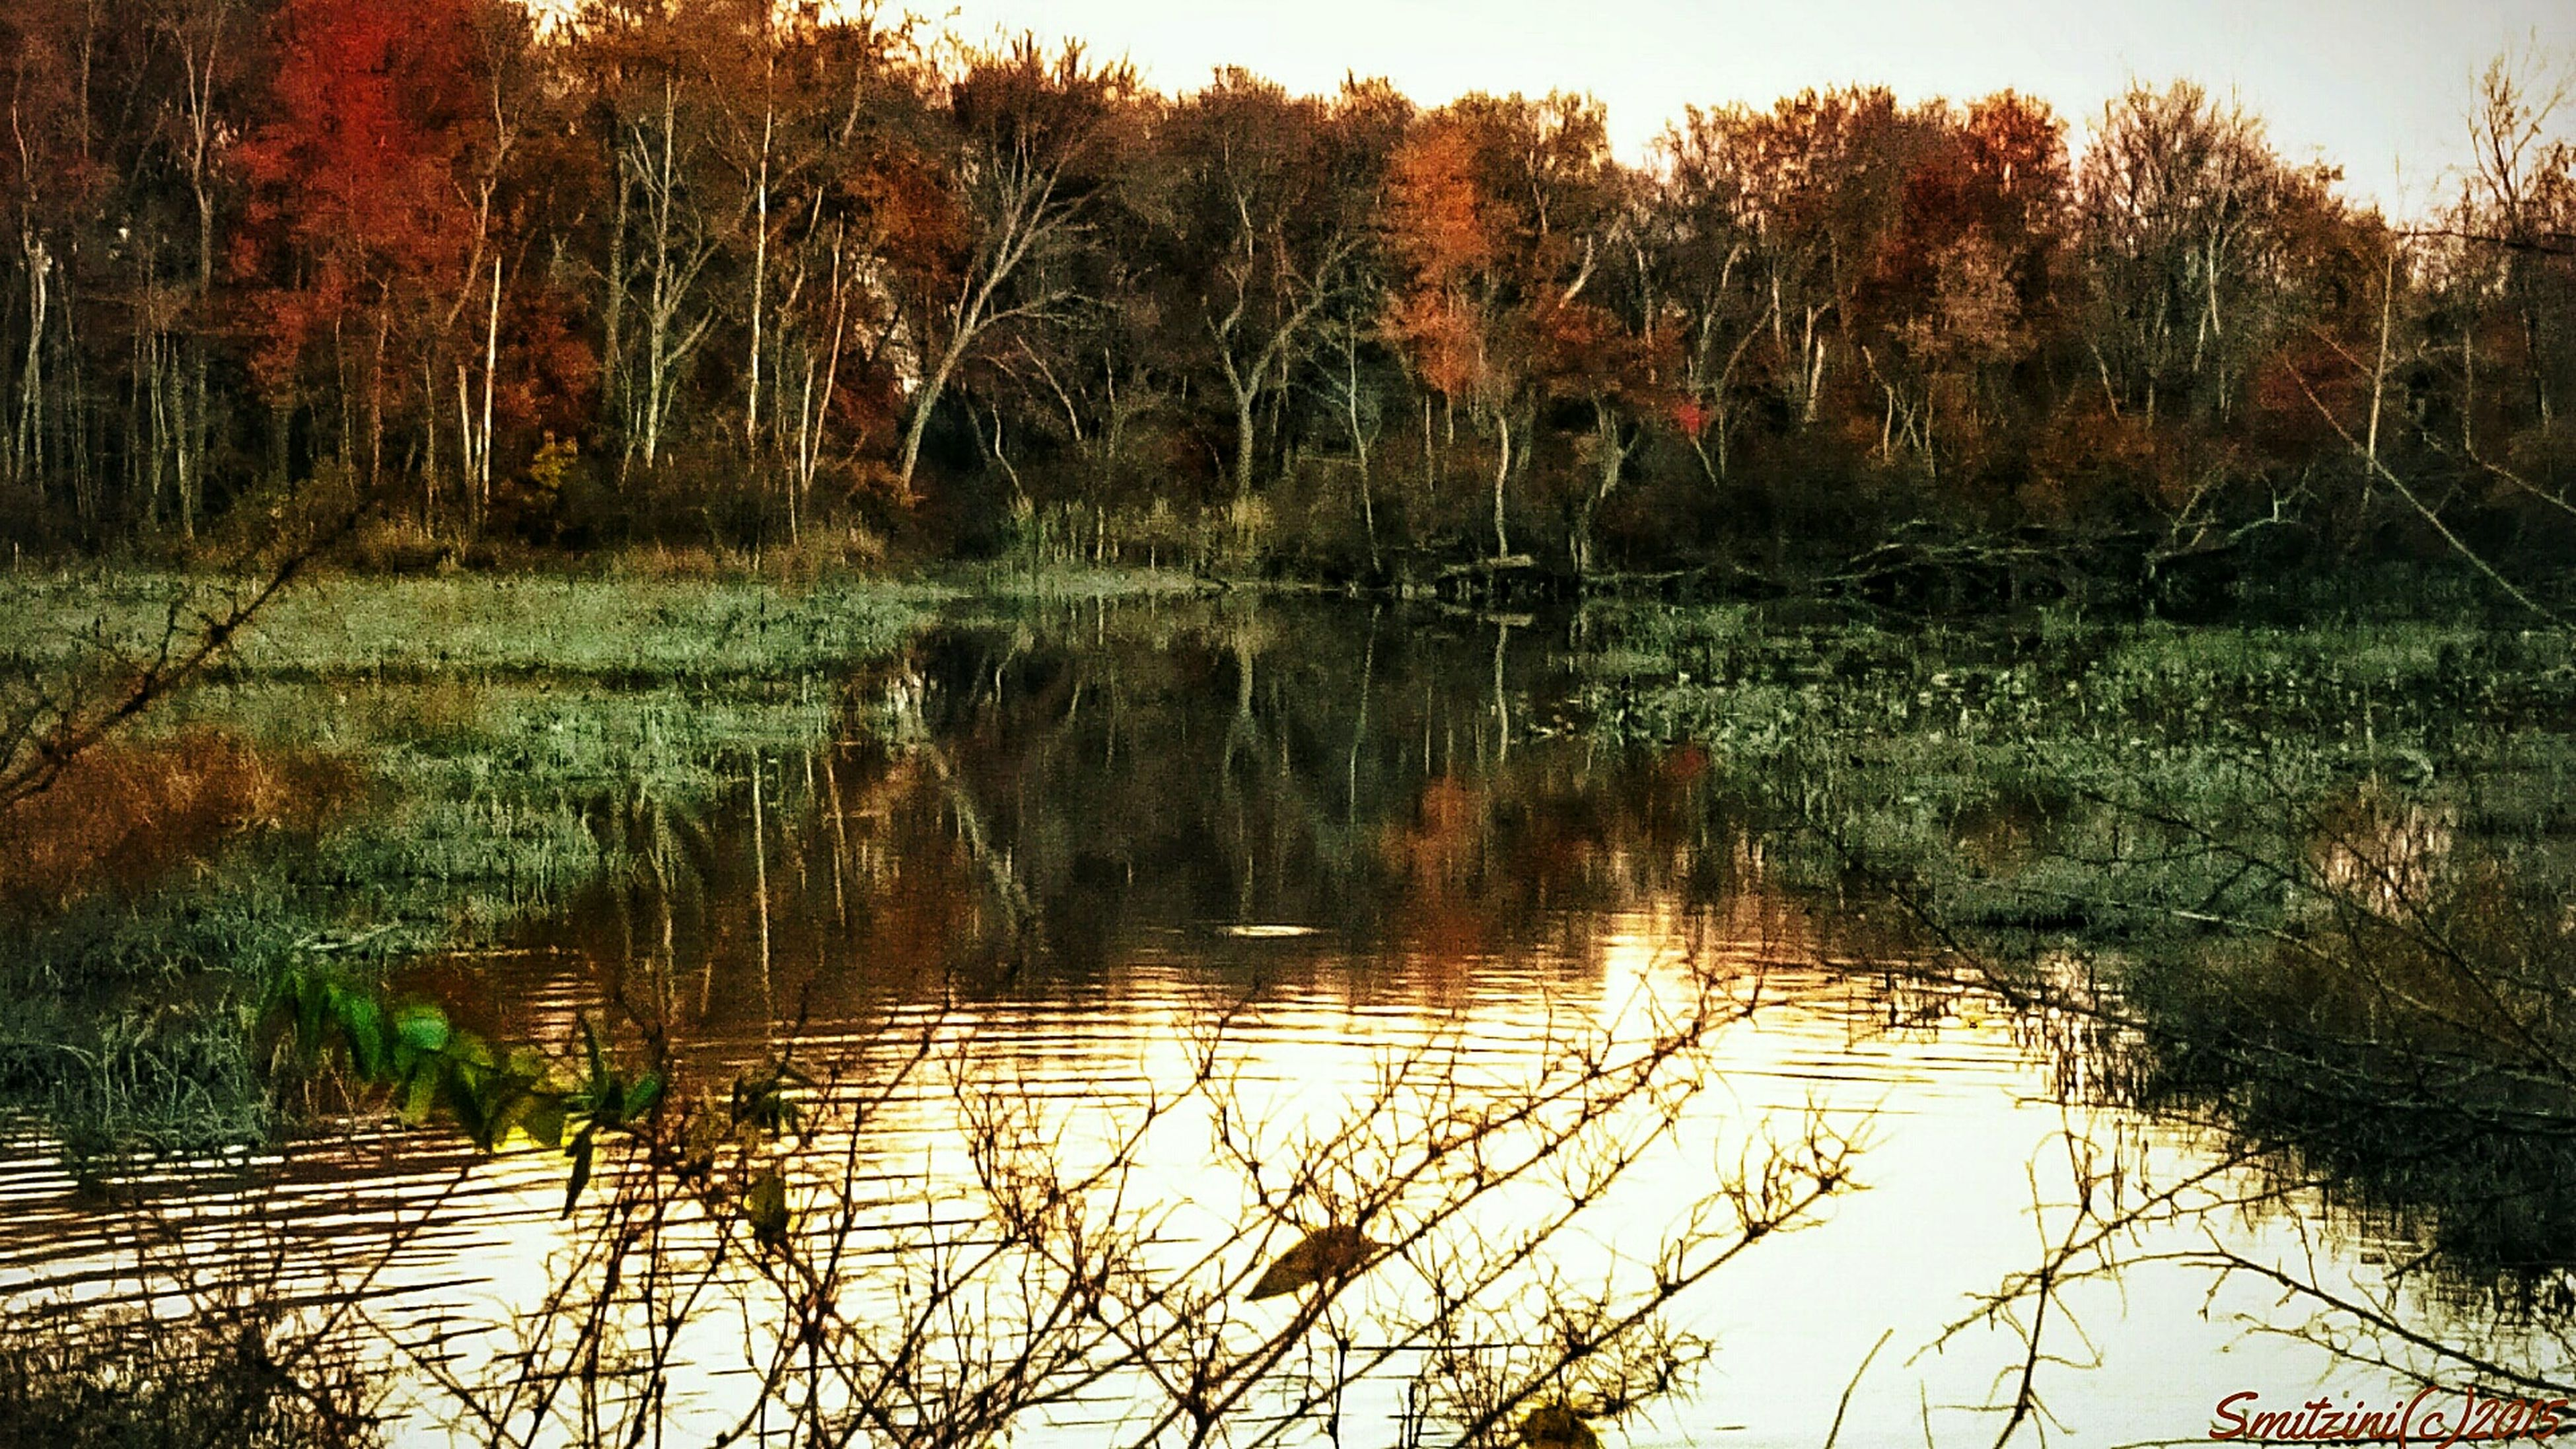 water, reflection, lake, tree, tranquility, tranquil scene, scenics, beauty in nature, nature, growth, forest, idyllic, plant, waterfront, non-urban scene, no people, lakeshore, sunset, outdoors, orange color